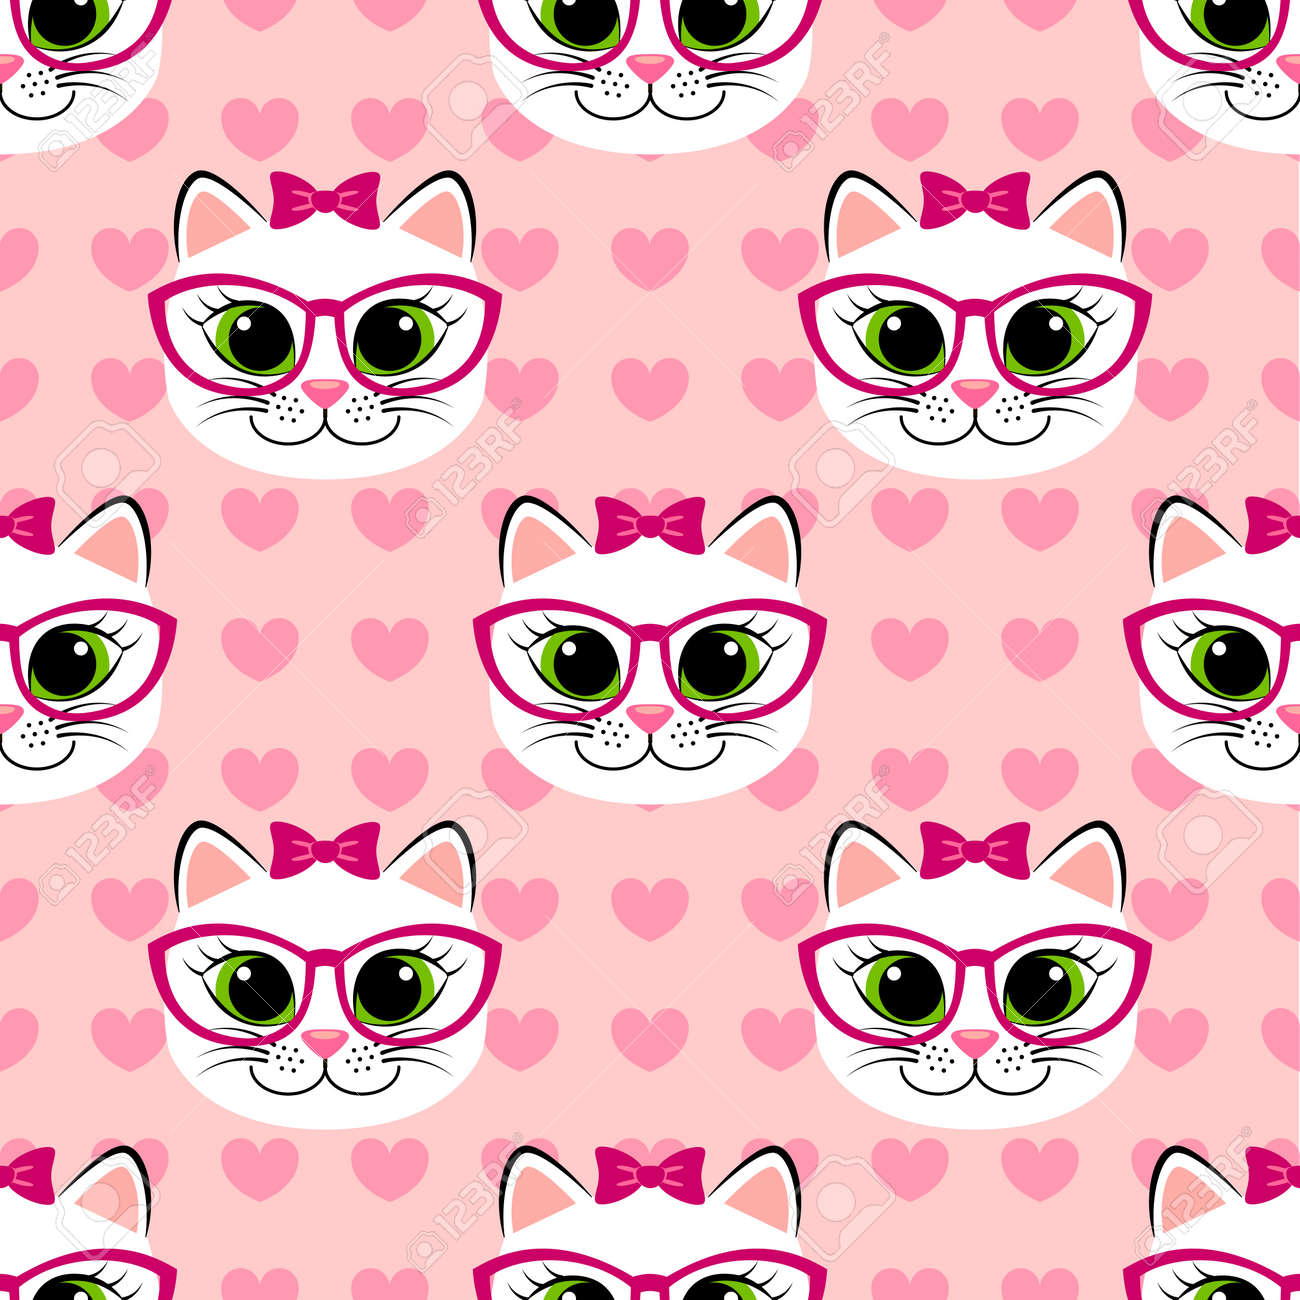 Seamless Pattern With Cute Cartoon Cat And Heart On Pink Background Royalty Free Cliparts Vectors And Stock Illustration Image 77185391